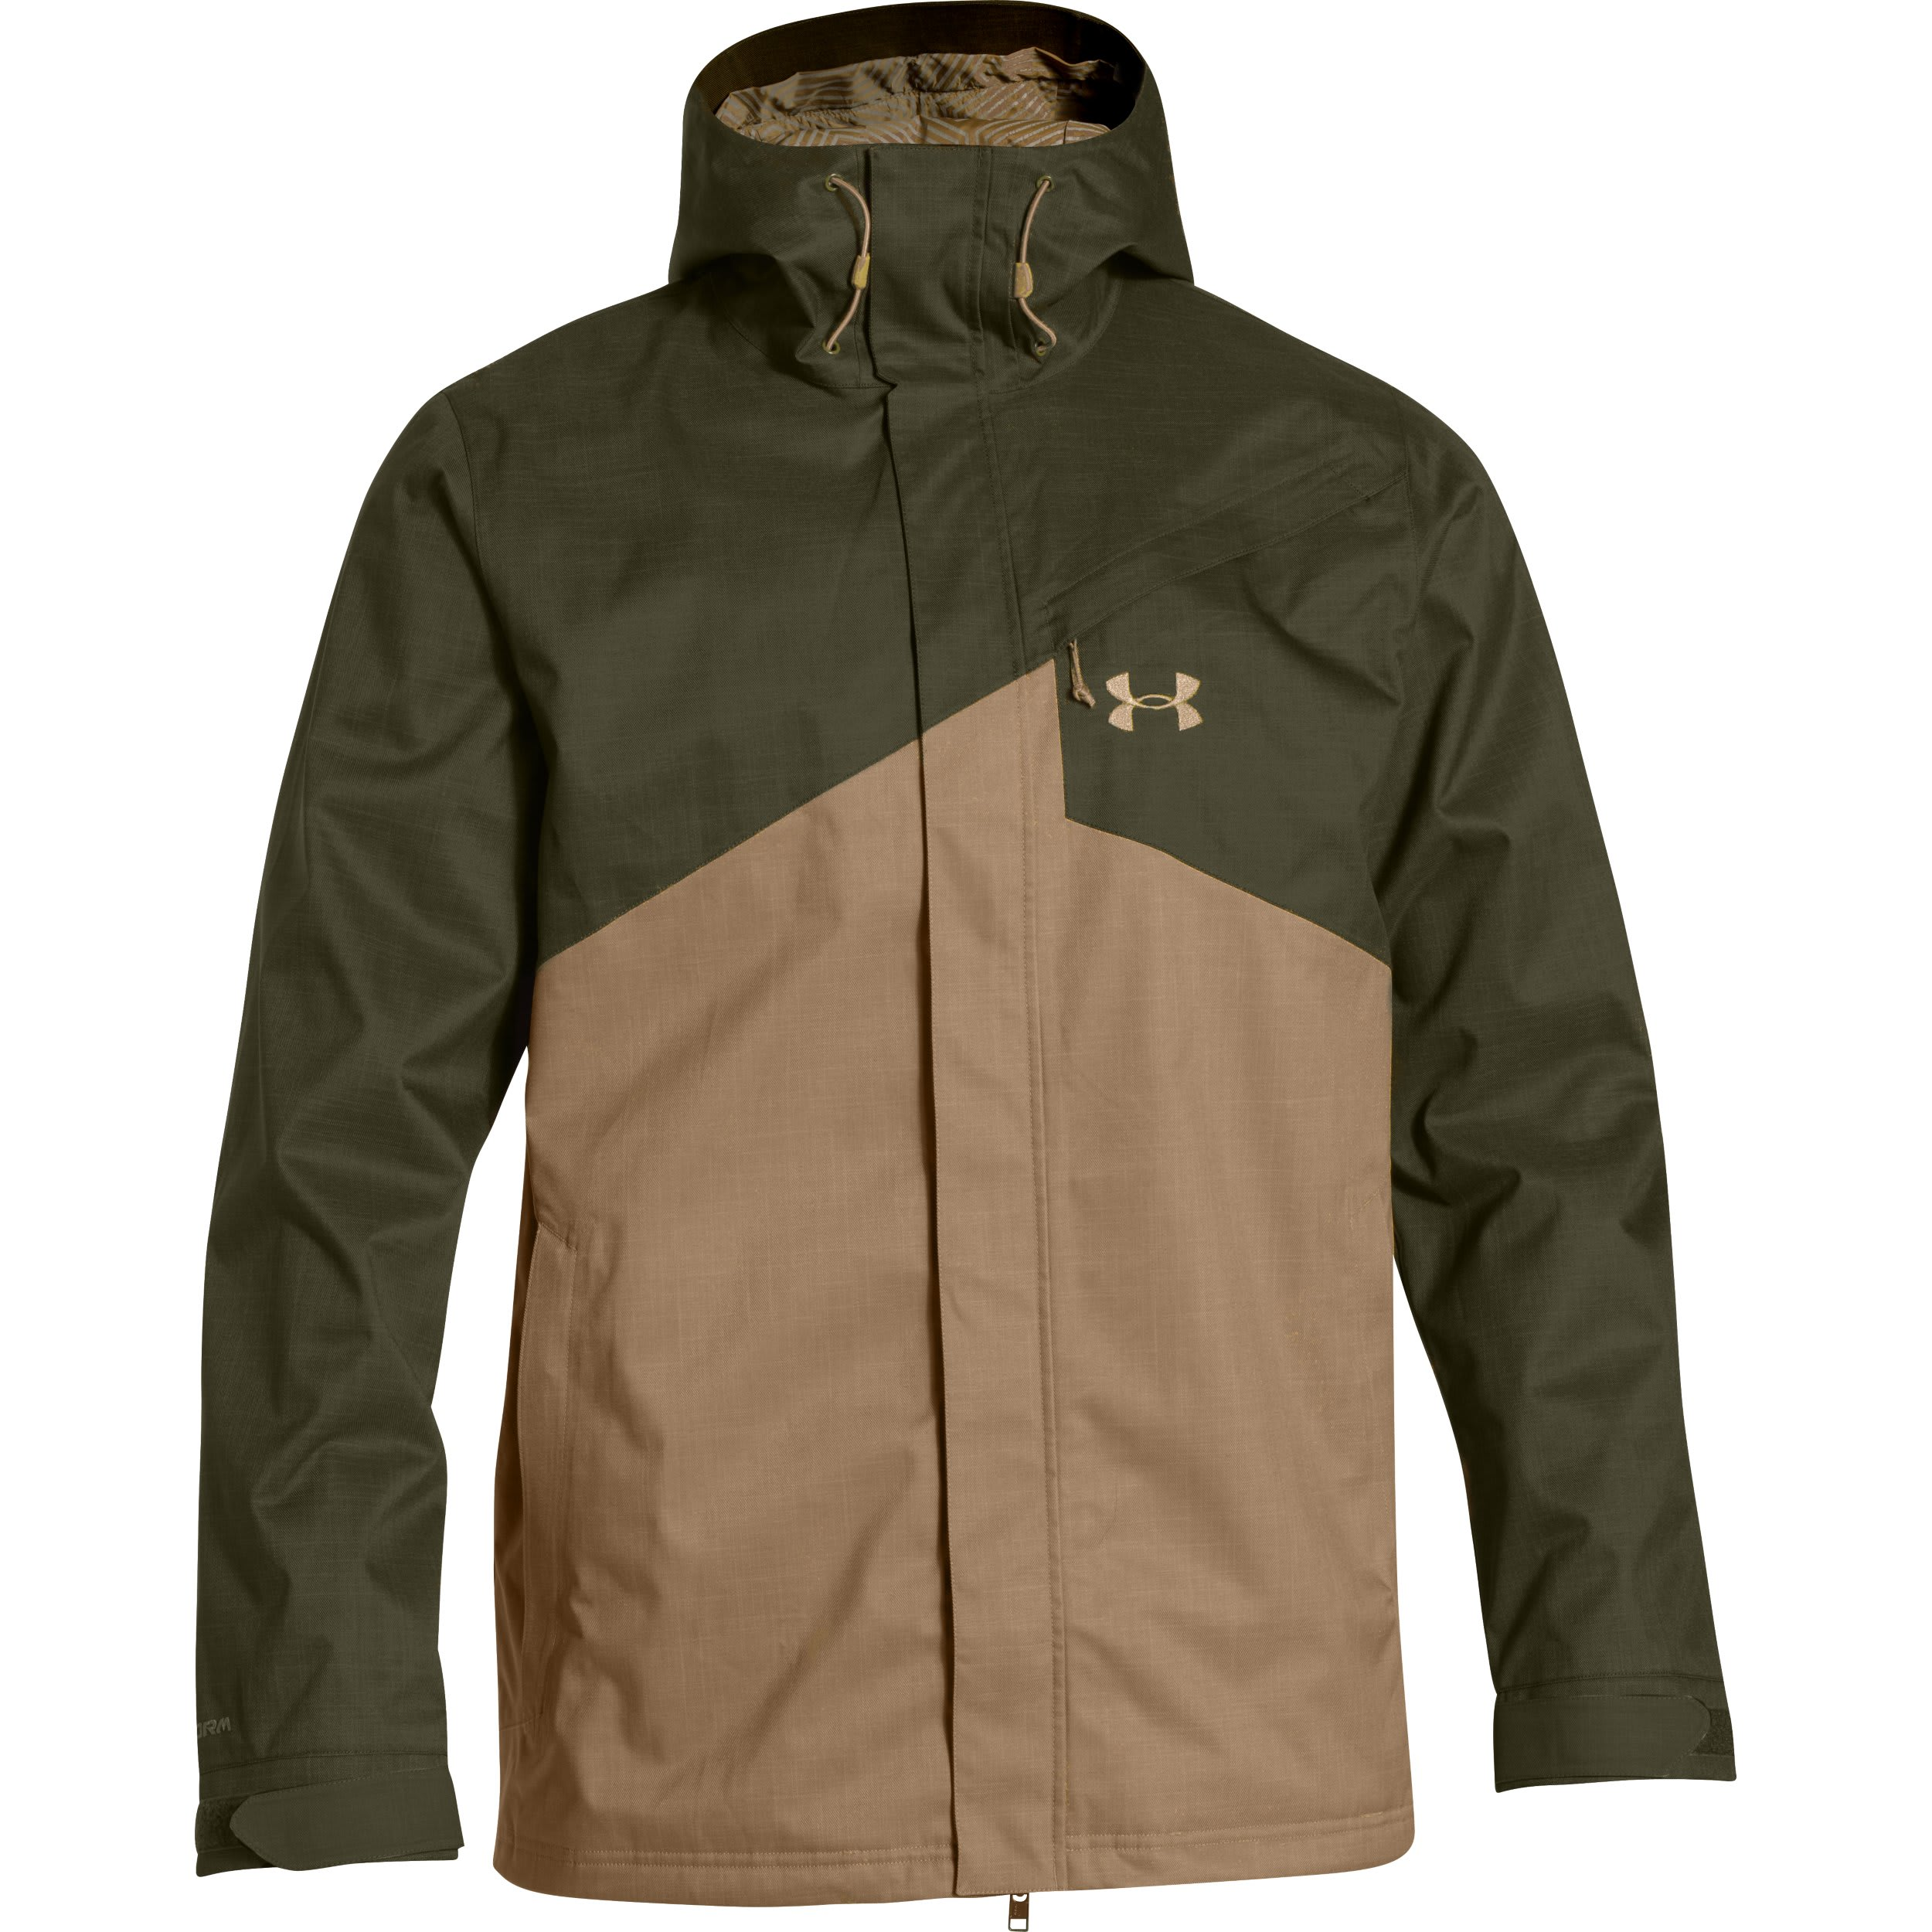 a603d7f4f7081 under armour jackets sale cheap   OFF53% The Largest Catalog Discounts